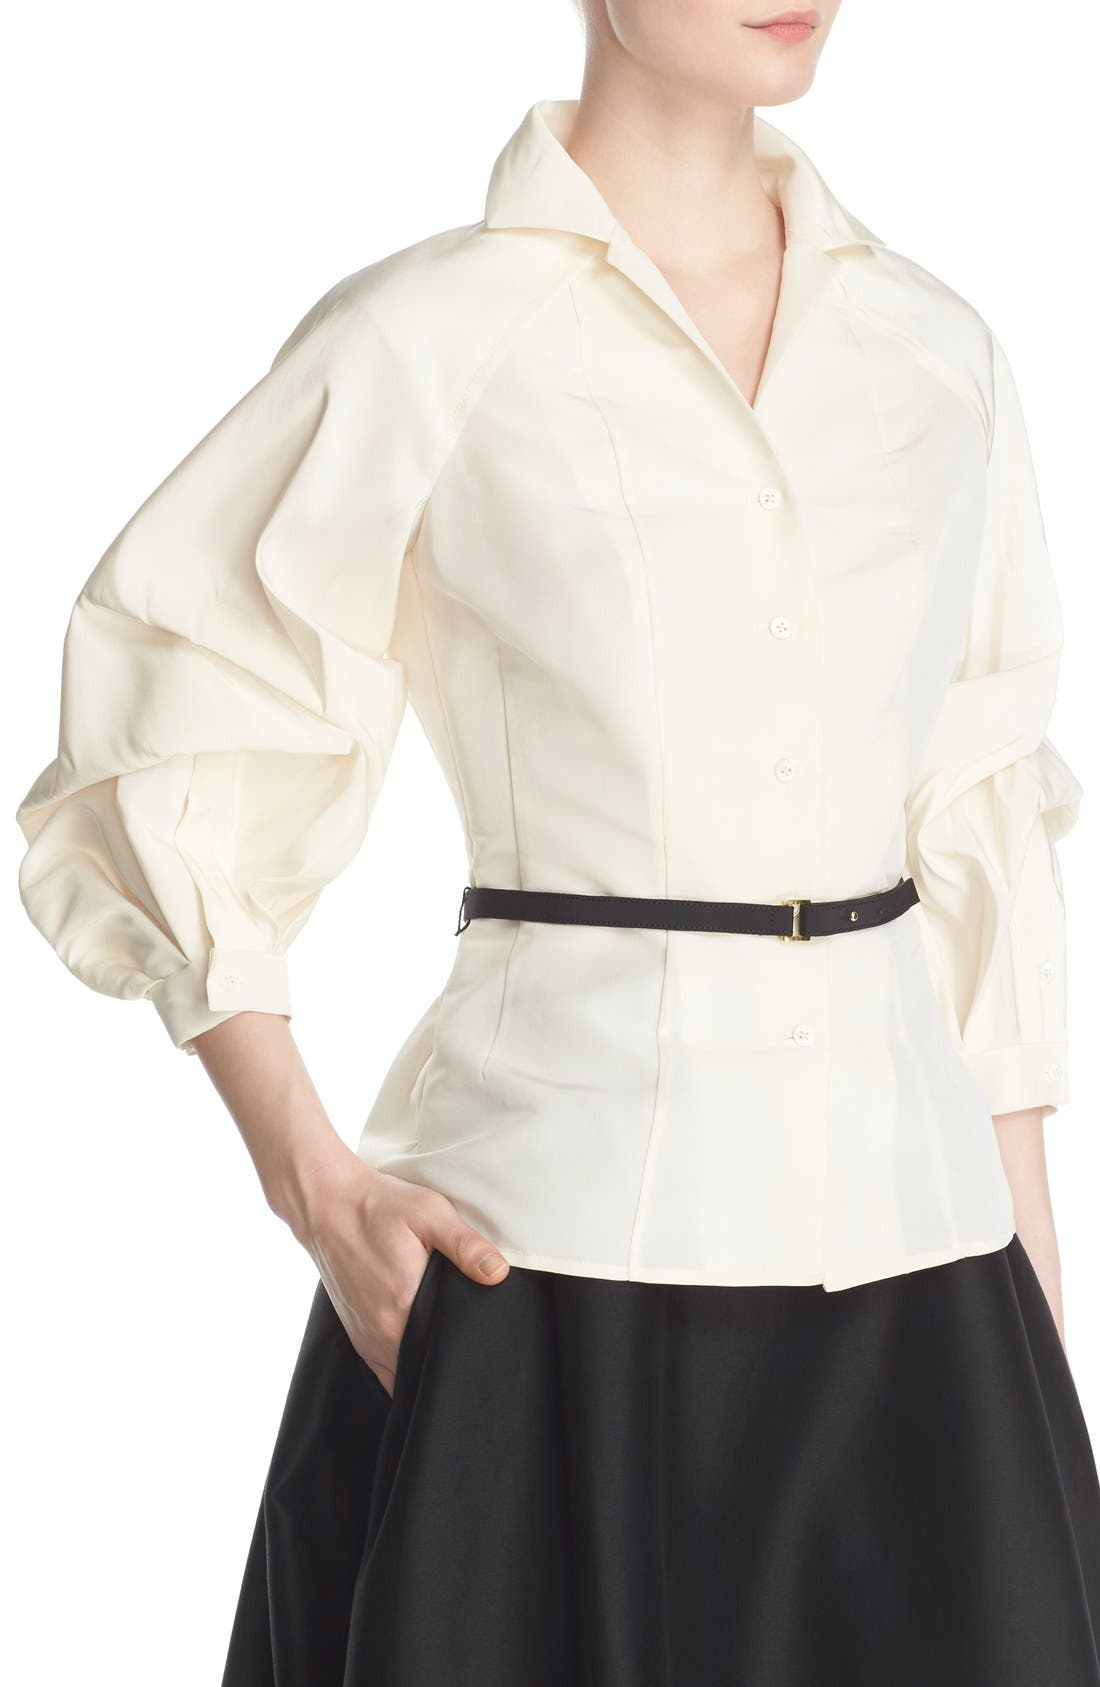 CAROLINA HERRERA Full Sleeve Silk Blouse